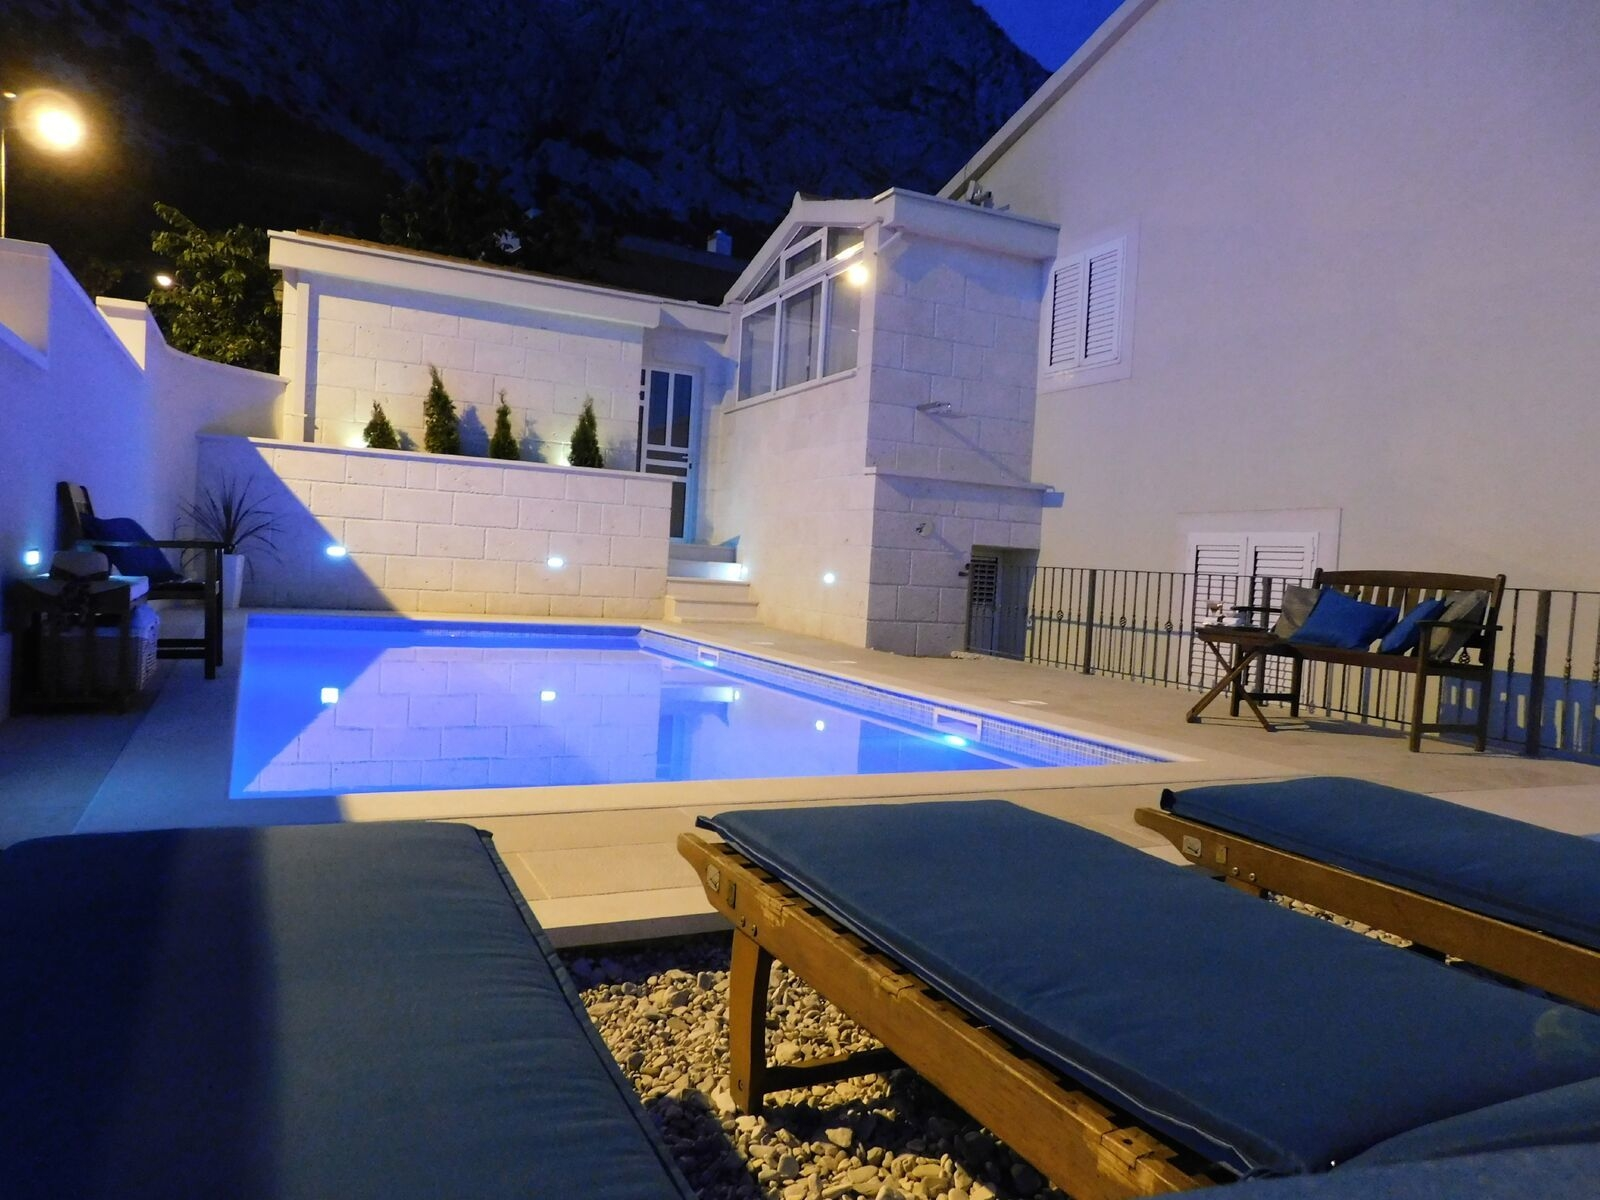 34950  - Bast - Holiday houses, villas Croatia